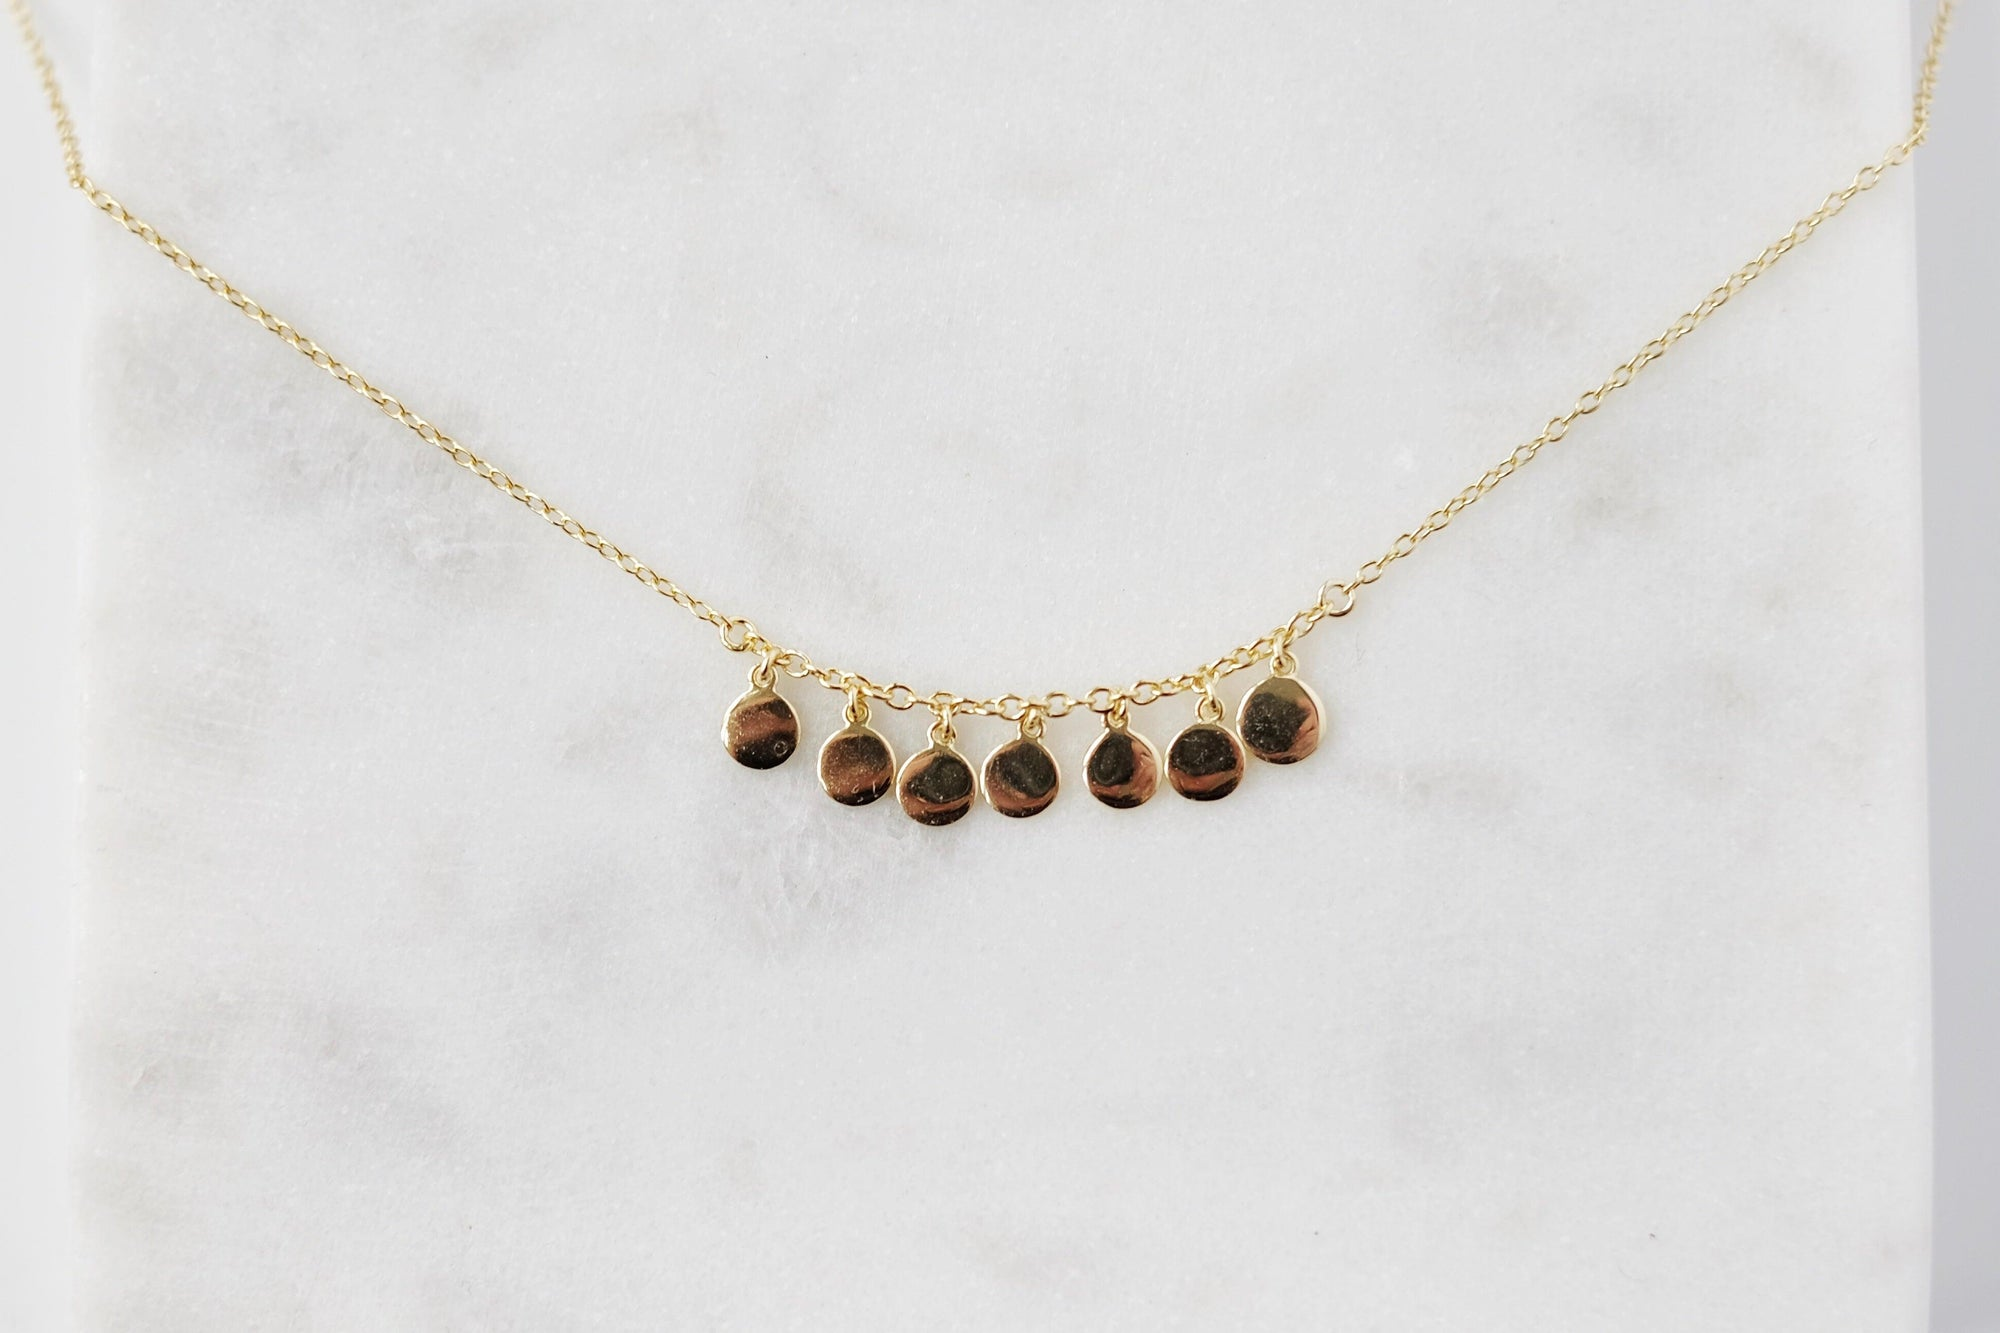 Gold Droplet Necklace